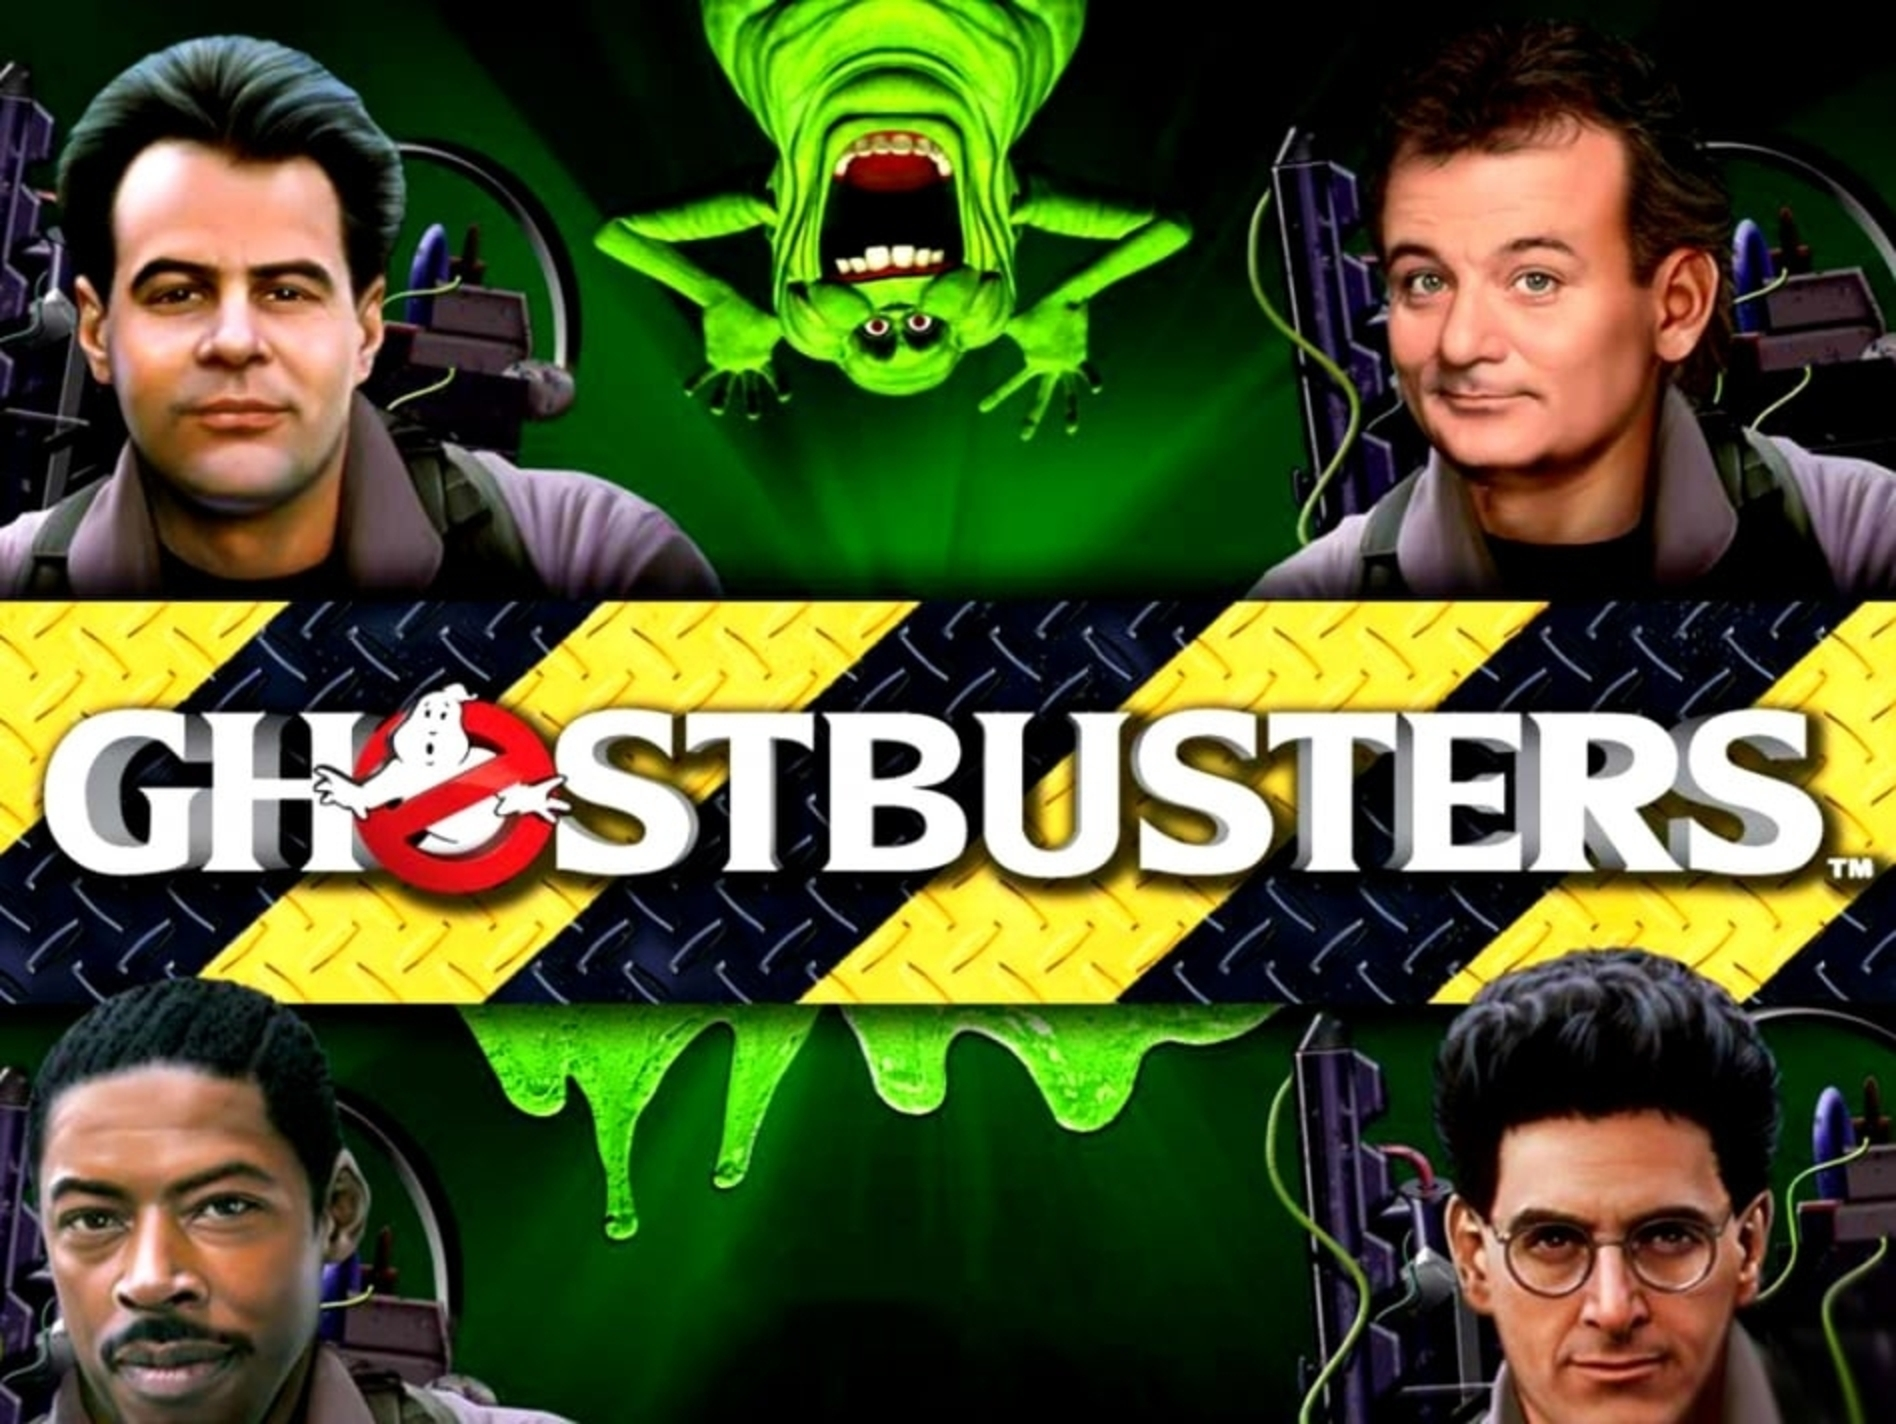 Se Ghostbusters Online Slot Demo Game, IGT